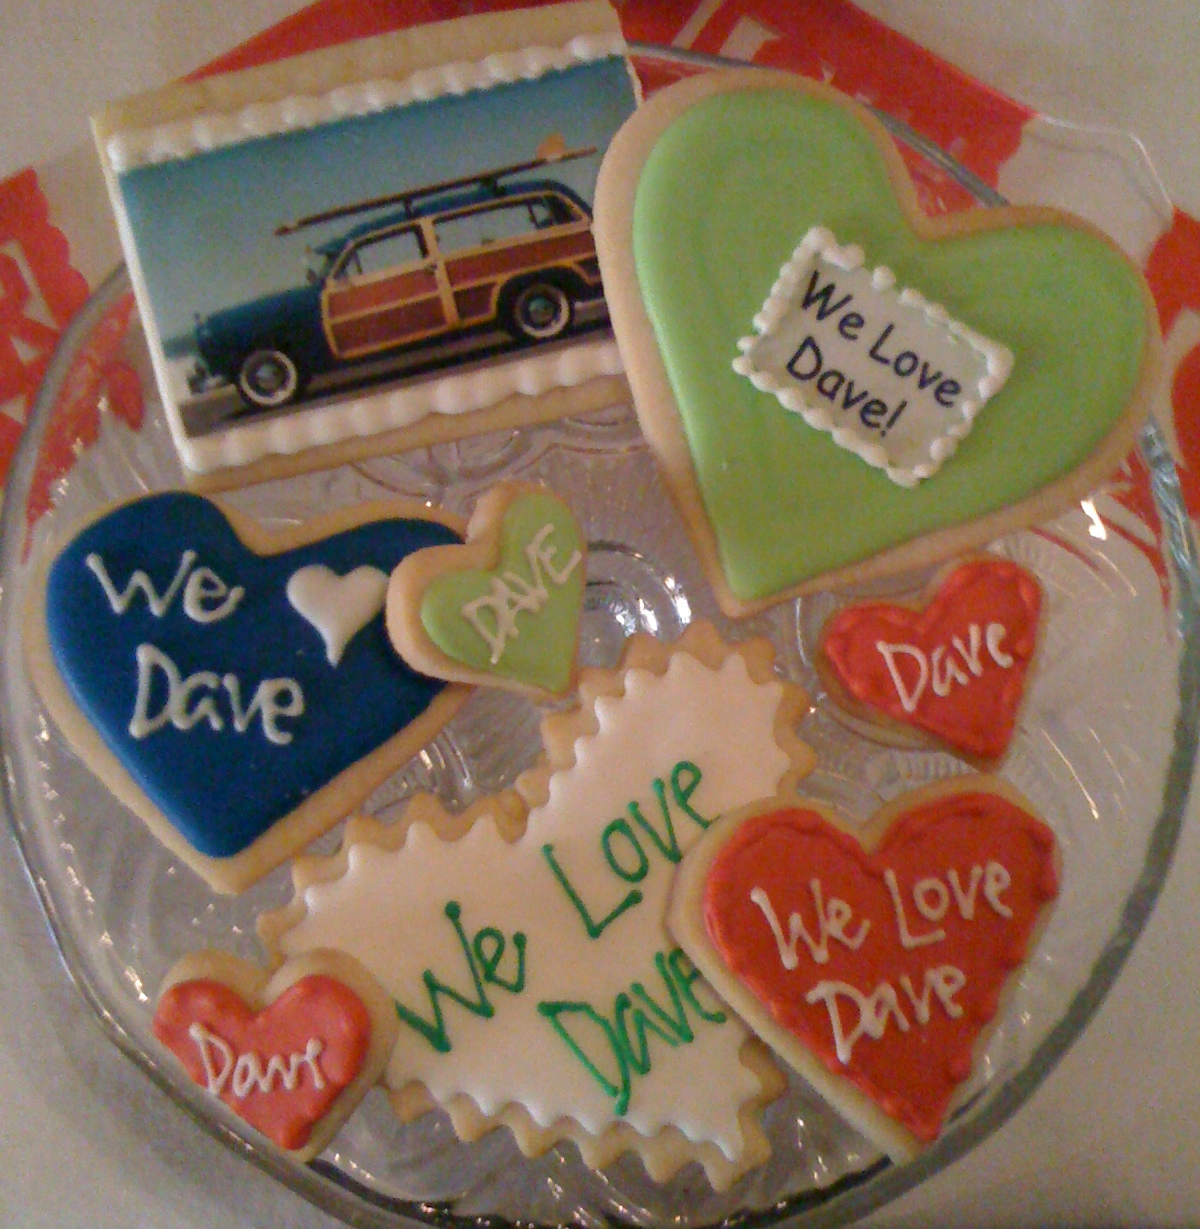 Cookies for DEN by Solvang Bakery.